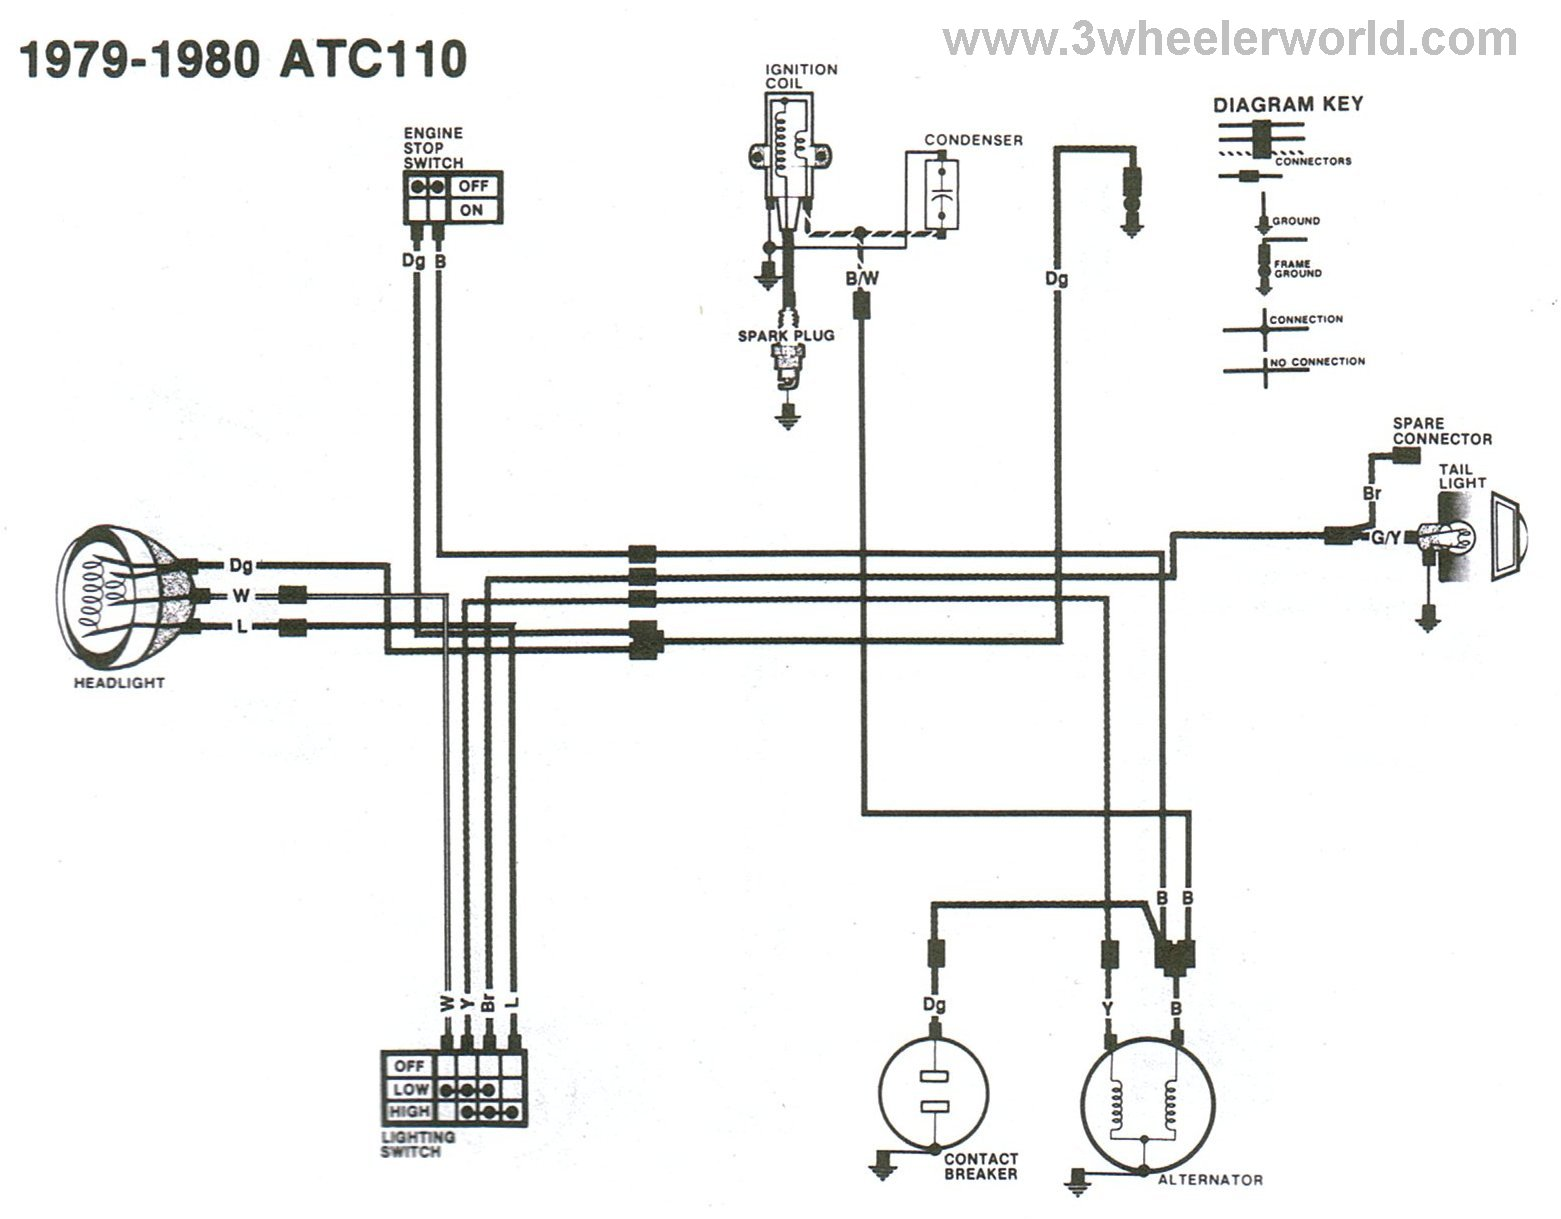 ATC110x79Thru80 3 wheeler world tech help honda wiring diagrams 400ex wiring diagram at bayanpartner.co